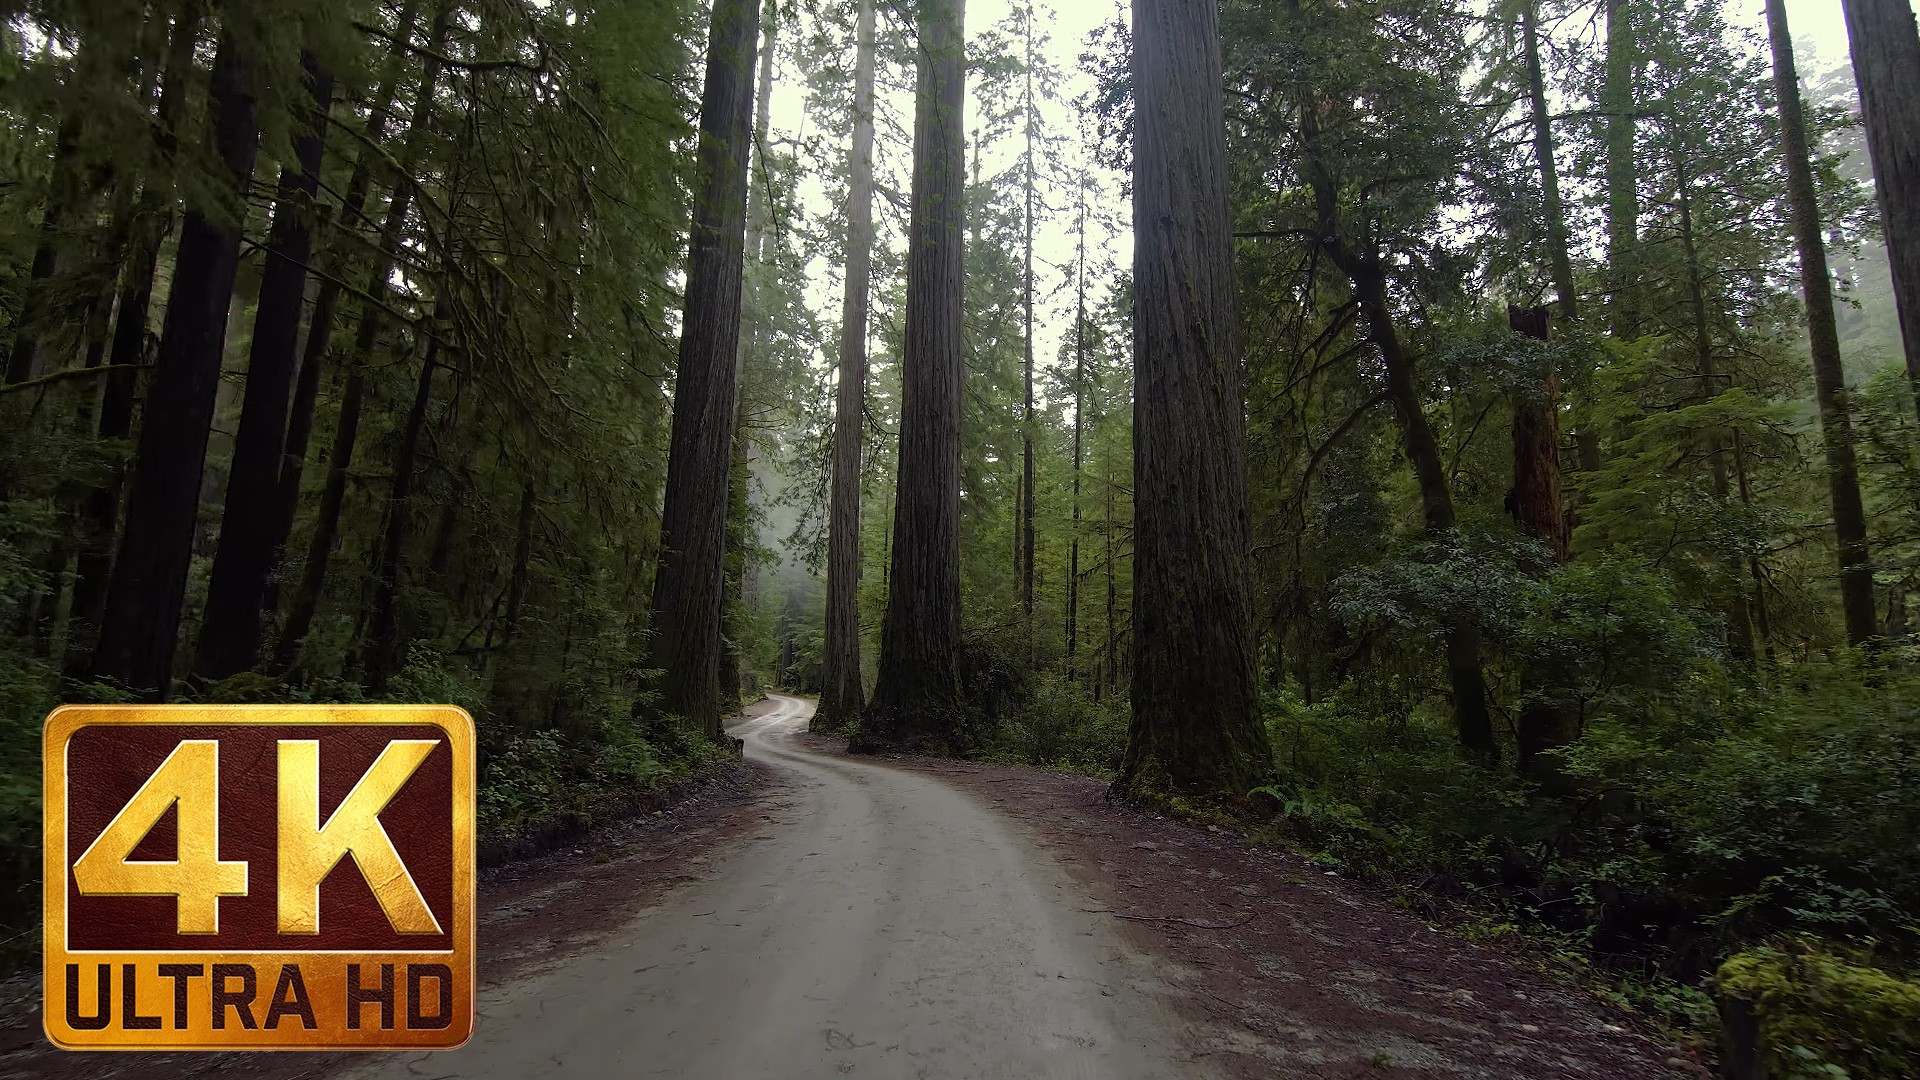 4K Relax Video – Howland Hill Road, Jedediah Smith Redwoods State Park